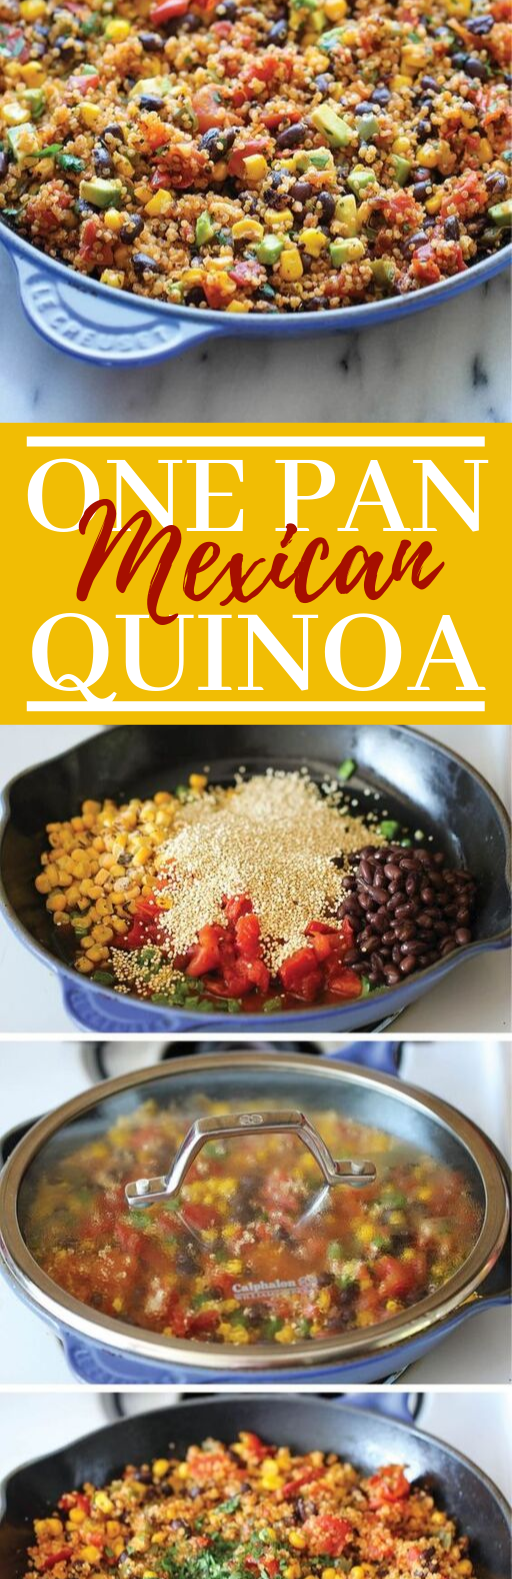 One Pan Mexican Quinoa #vegetarian #healthy